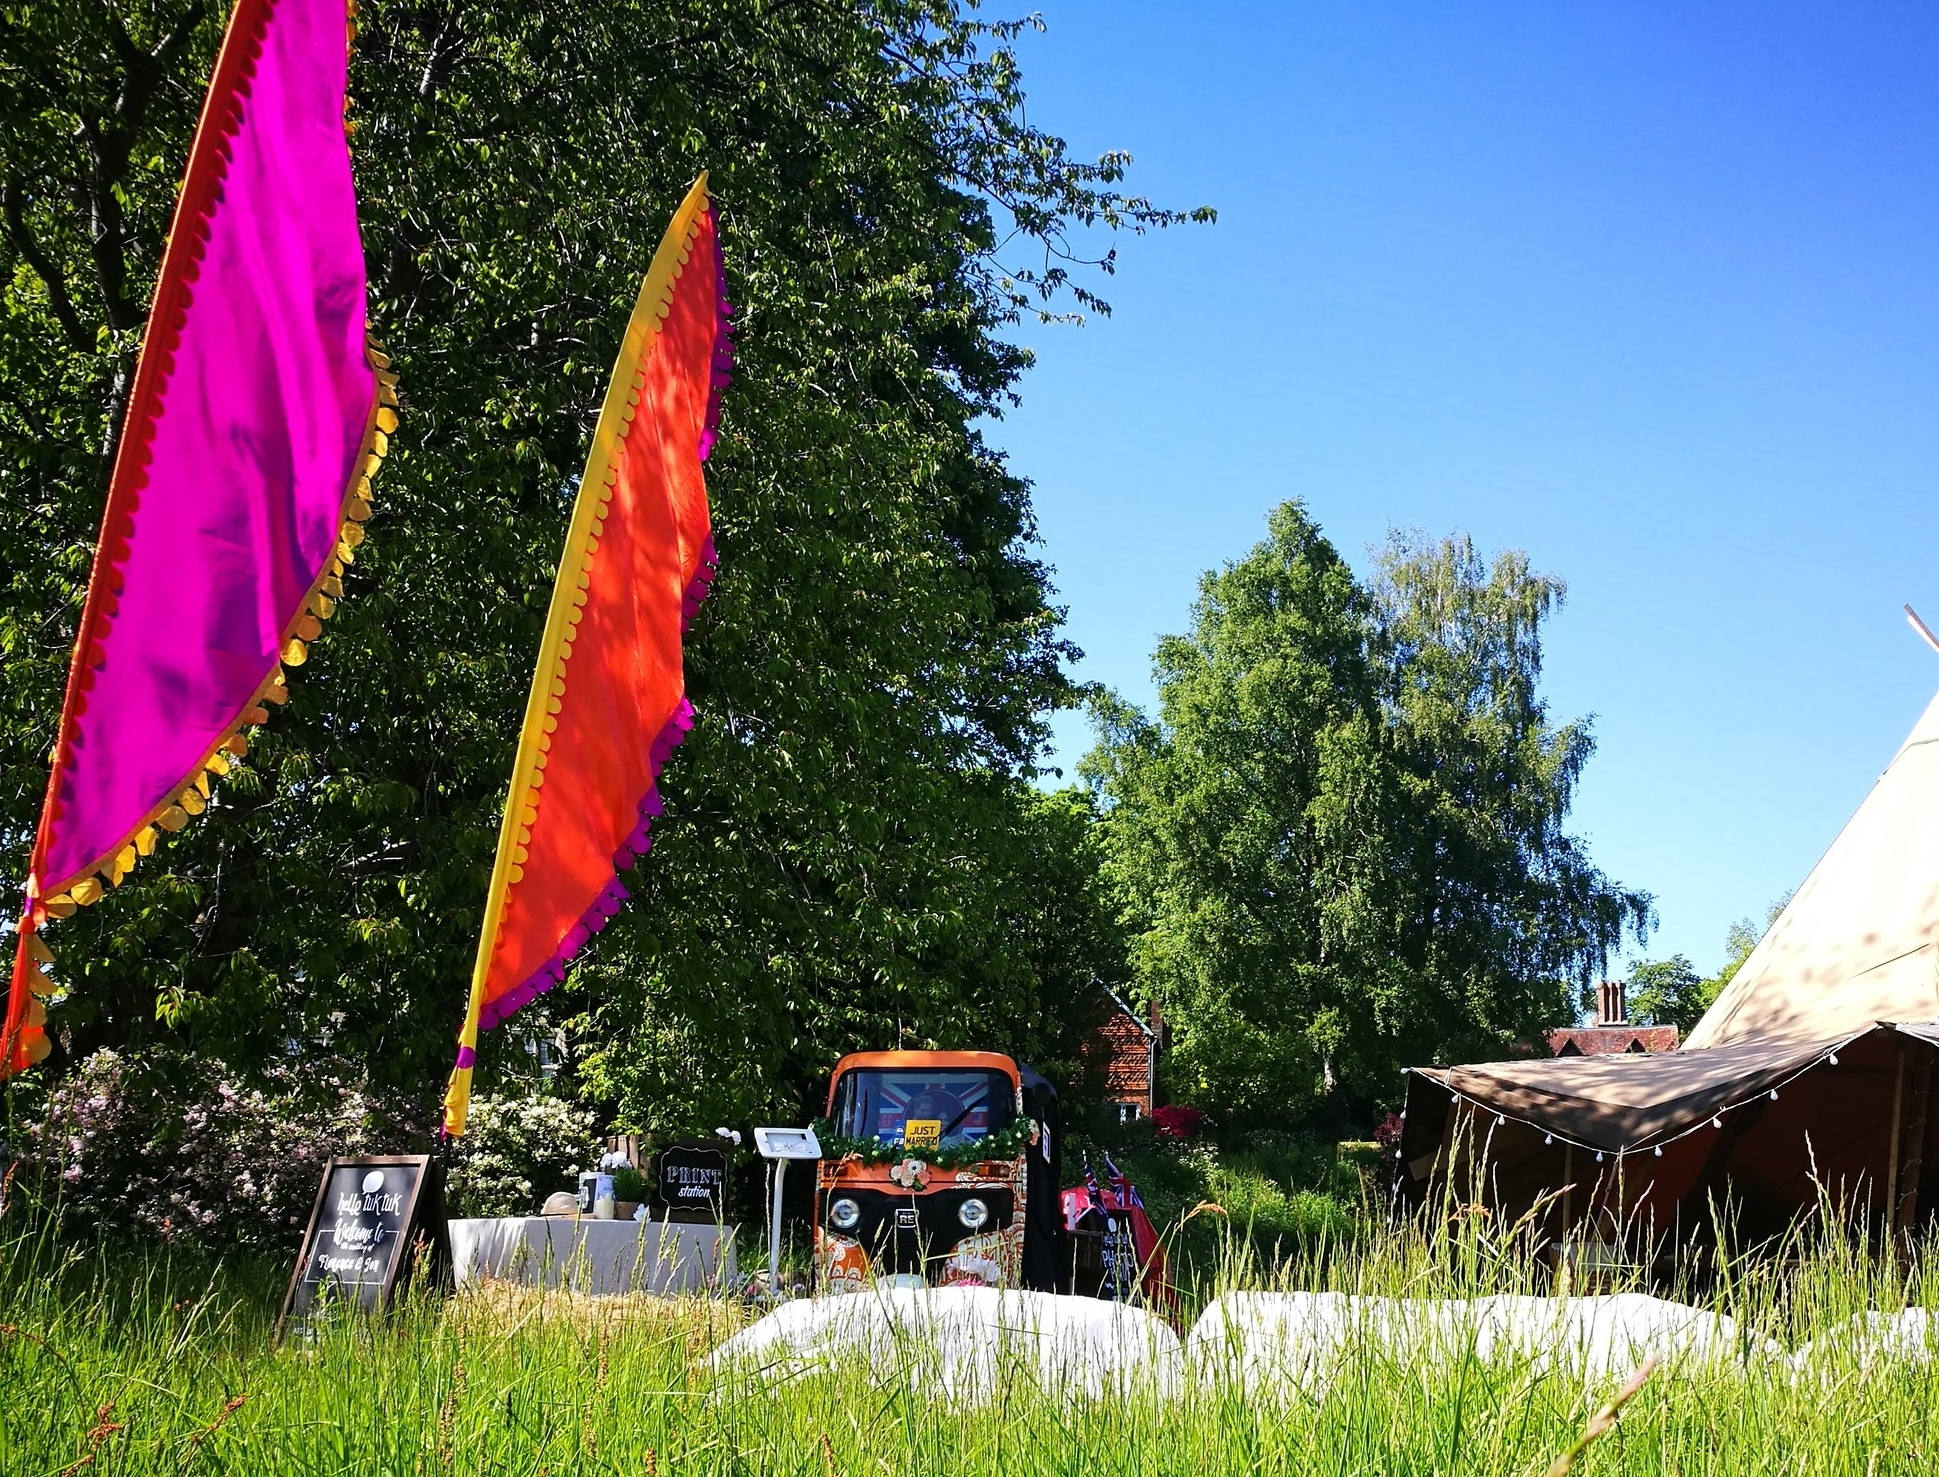 Indian SummerFestival Flags - Add some wow to your booth with our fabulous colour pop festival flags! 5 metres tall and vibrantly coloured to complement any outdoor setting your guests won't be able to miss them!